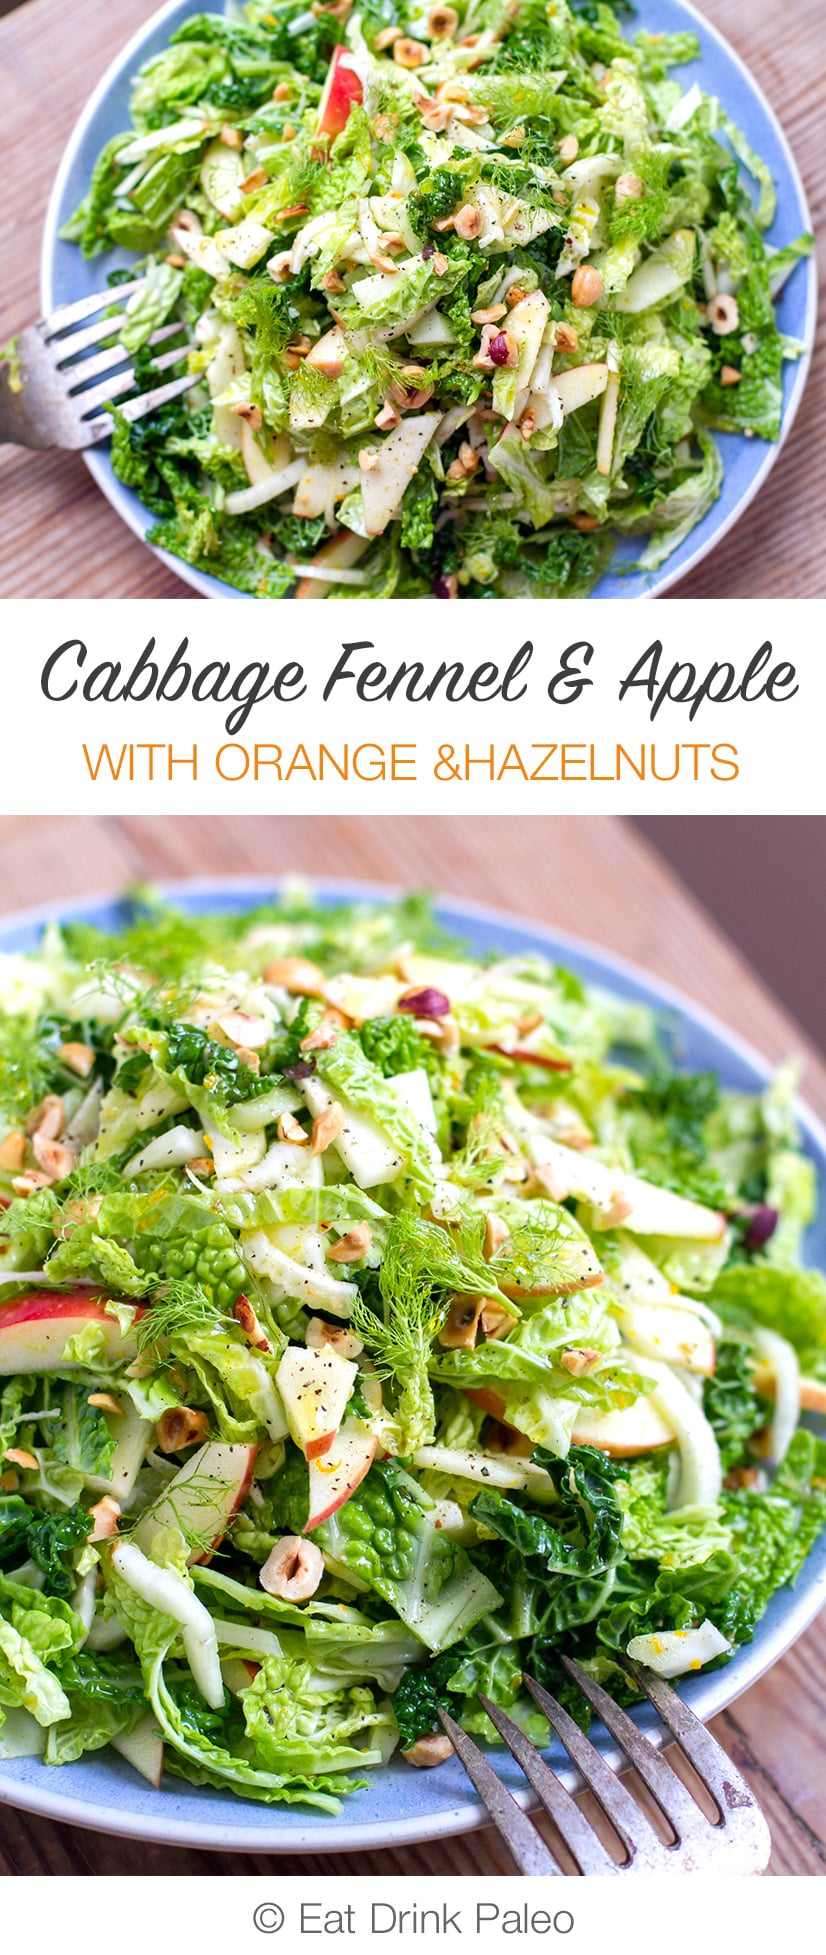 Cabbage Fennel & Apple Slaw Salad With Orange & Hazelnut (Paleo, Gluten-Free, Vegan, Vegetarian)